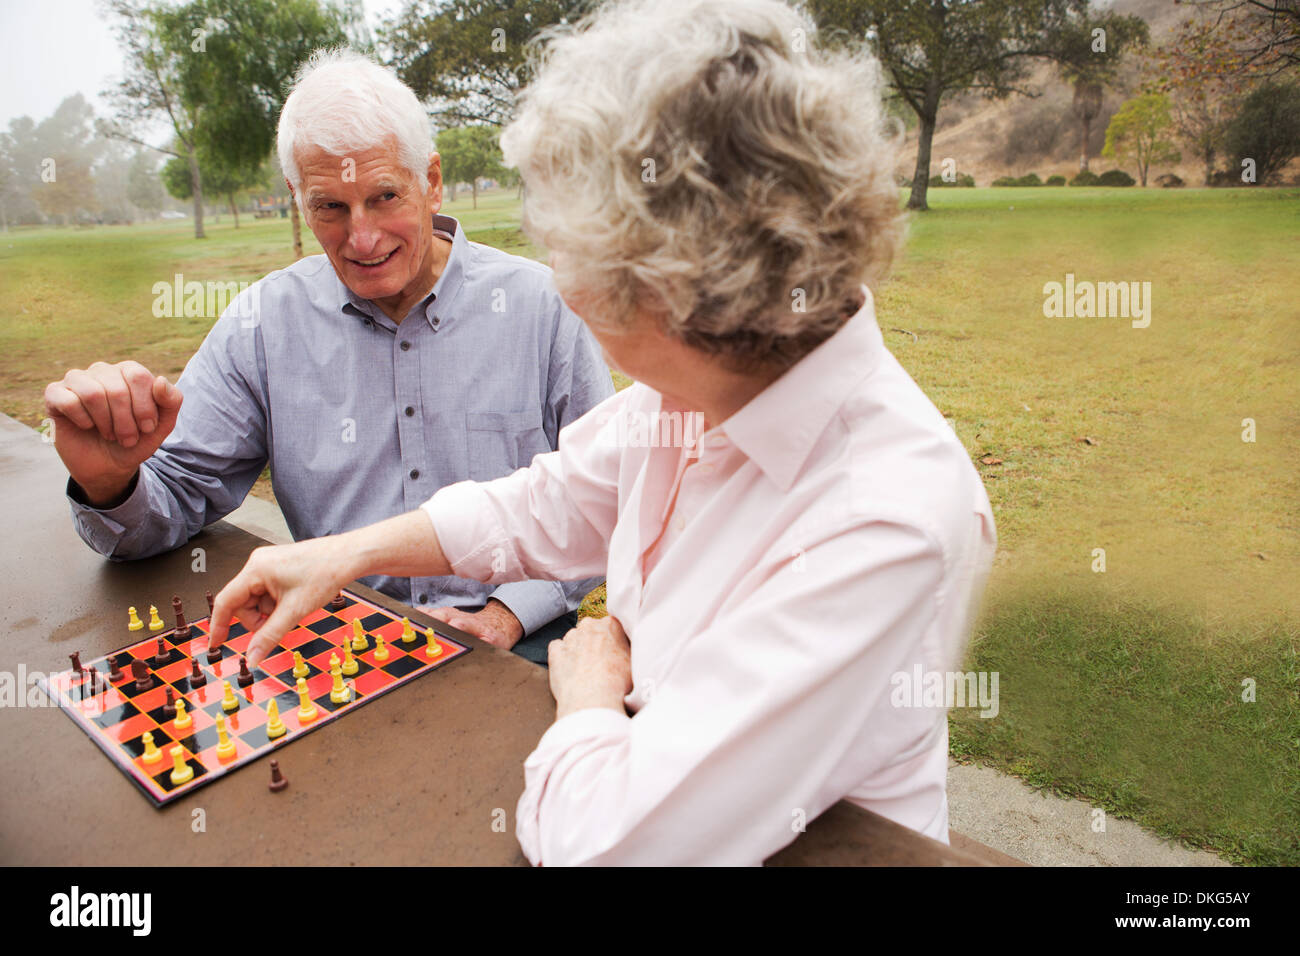 Husband and wife playing chess in the park - Stock Image